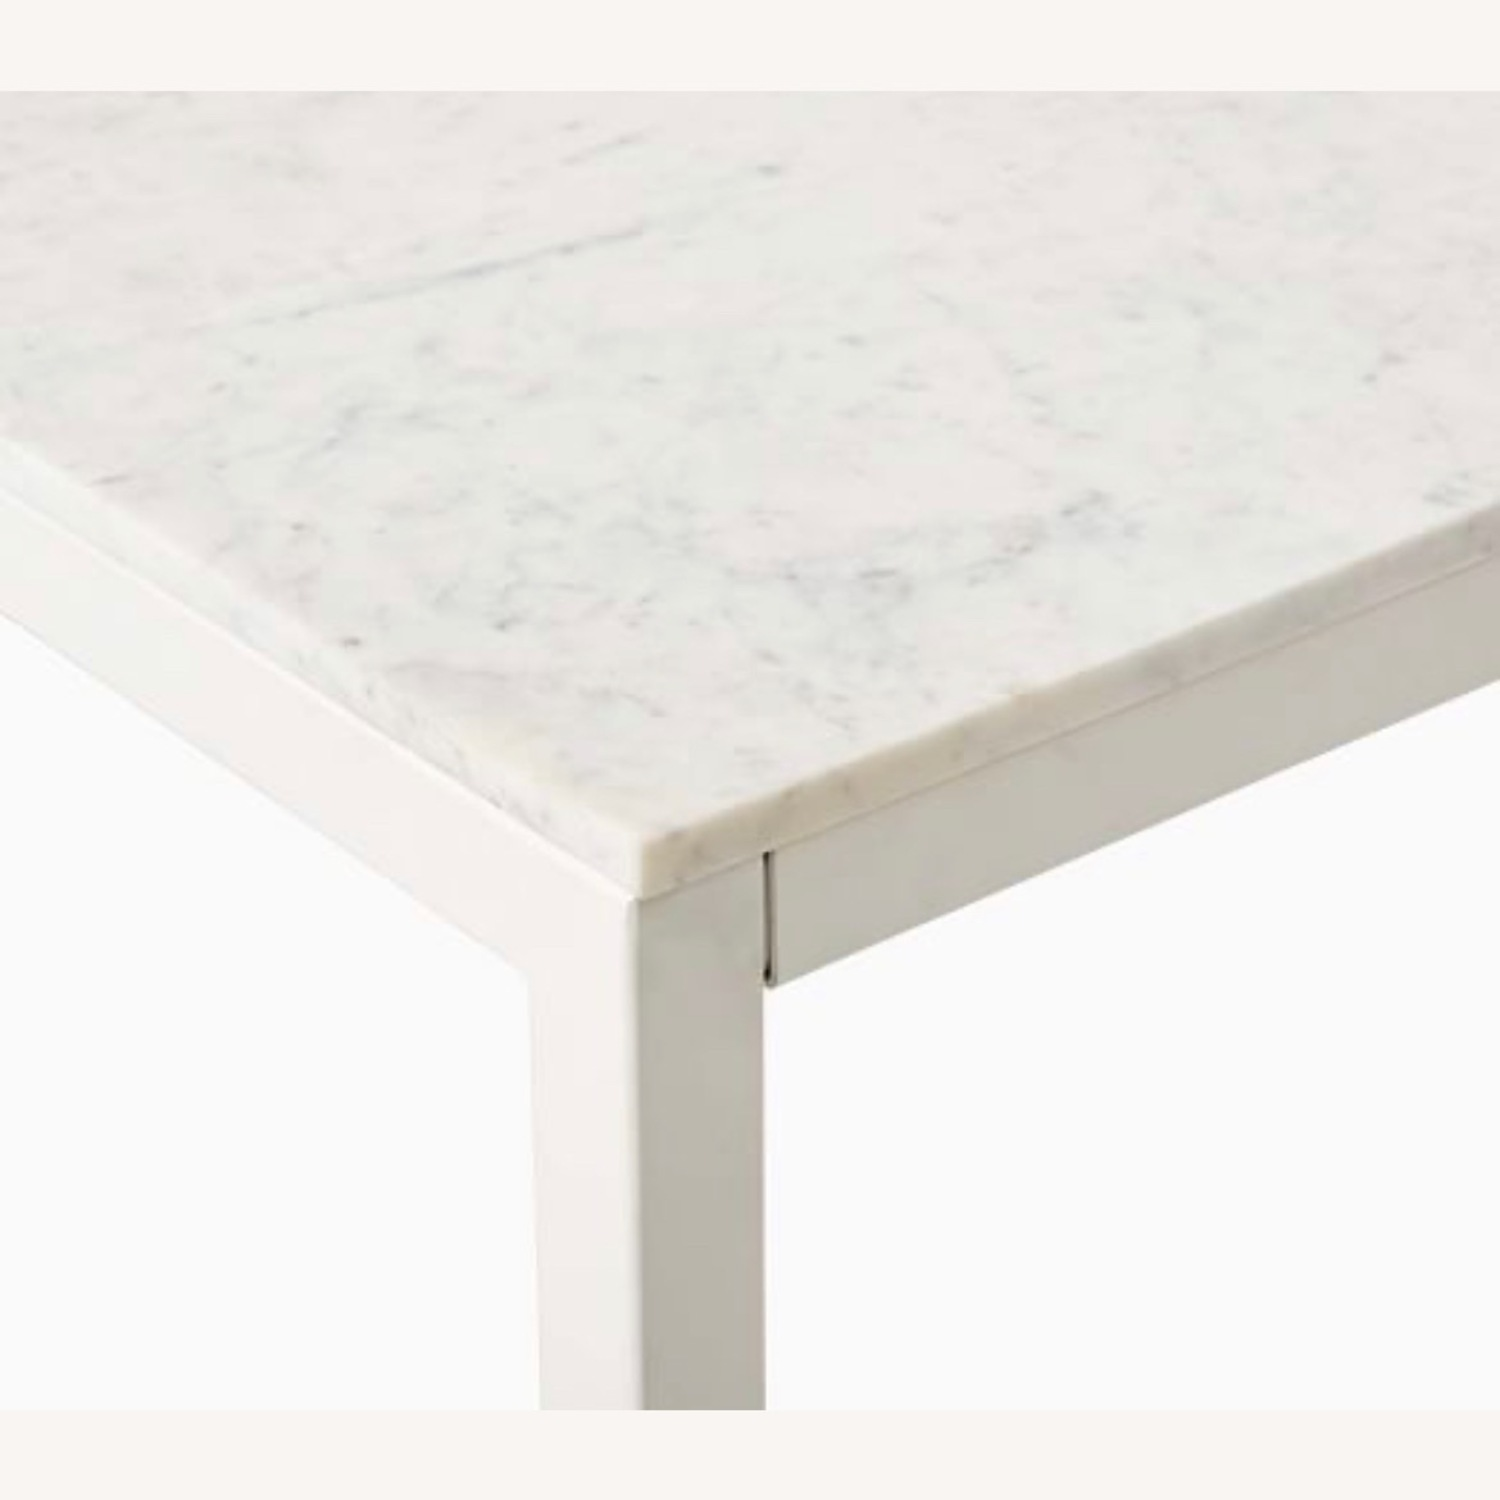 West Elm Frame Counter Table White Marble - image-1